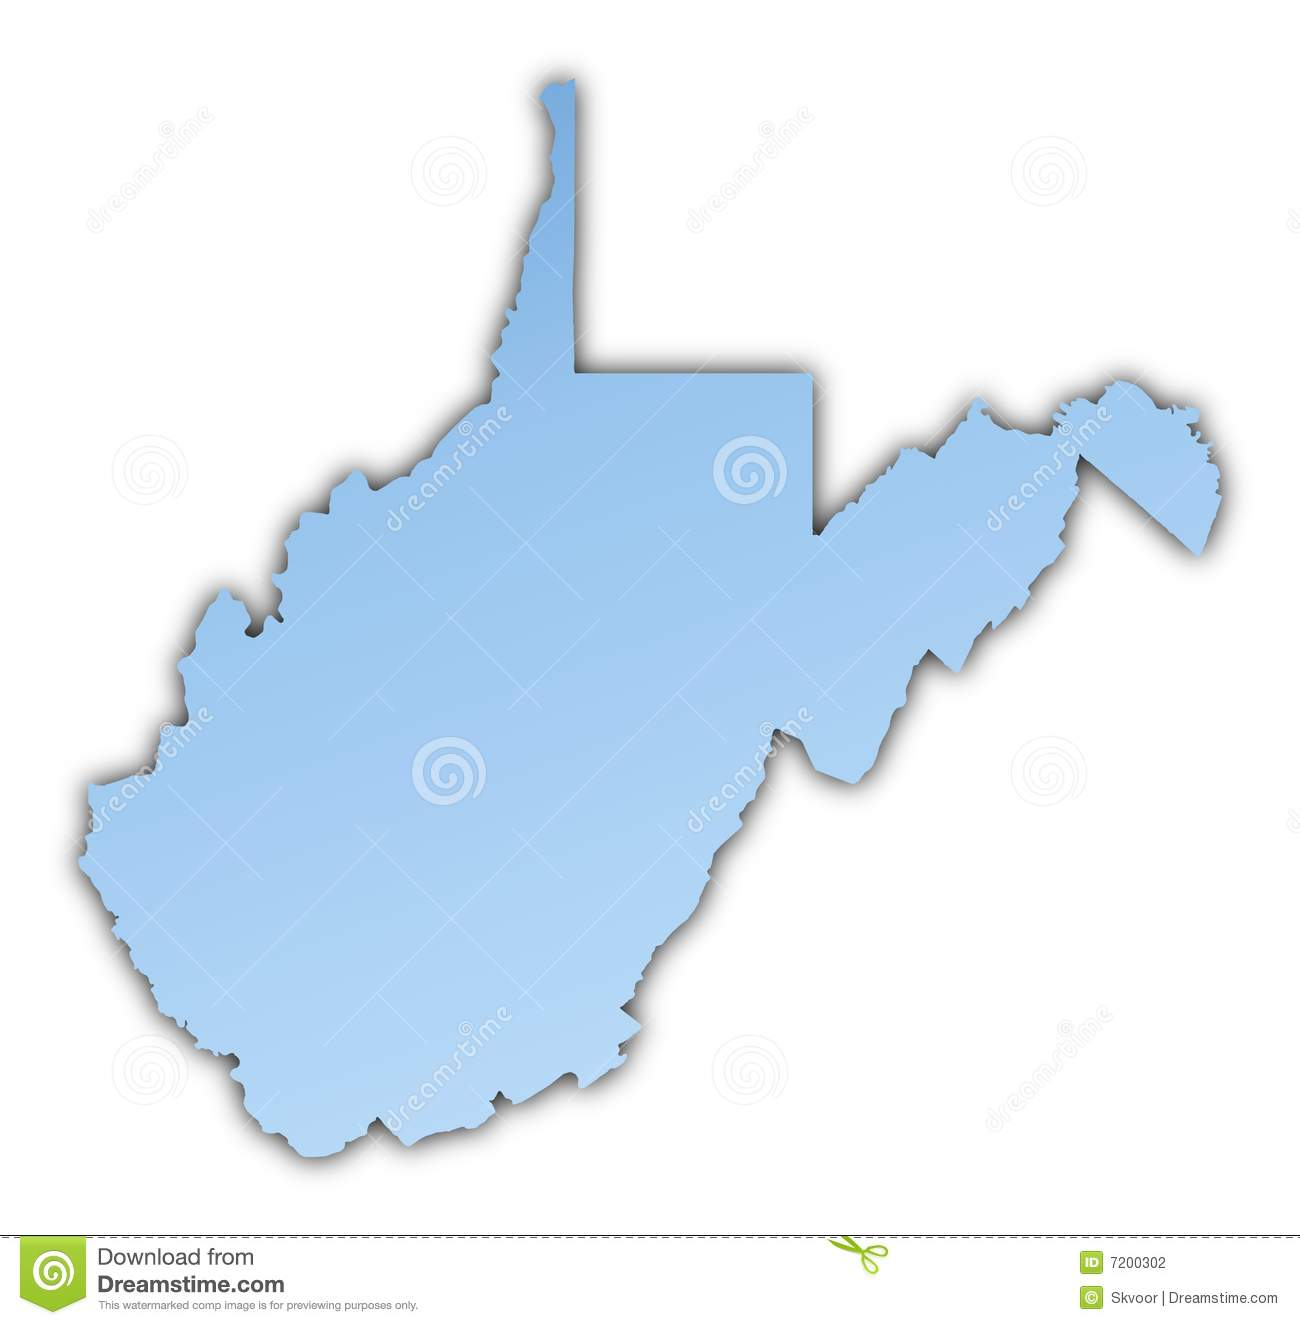 West Virginia(USA) map stock illustration. Illustration of ...